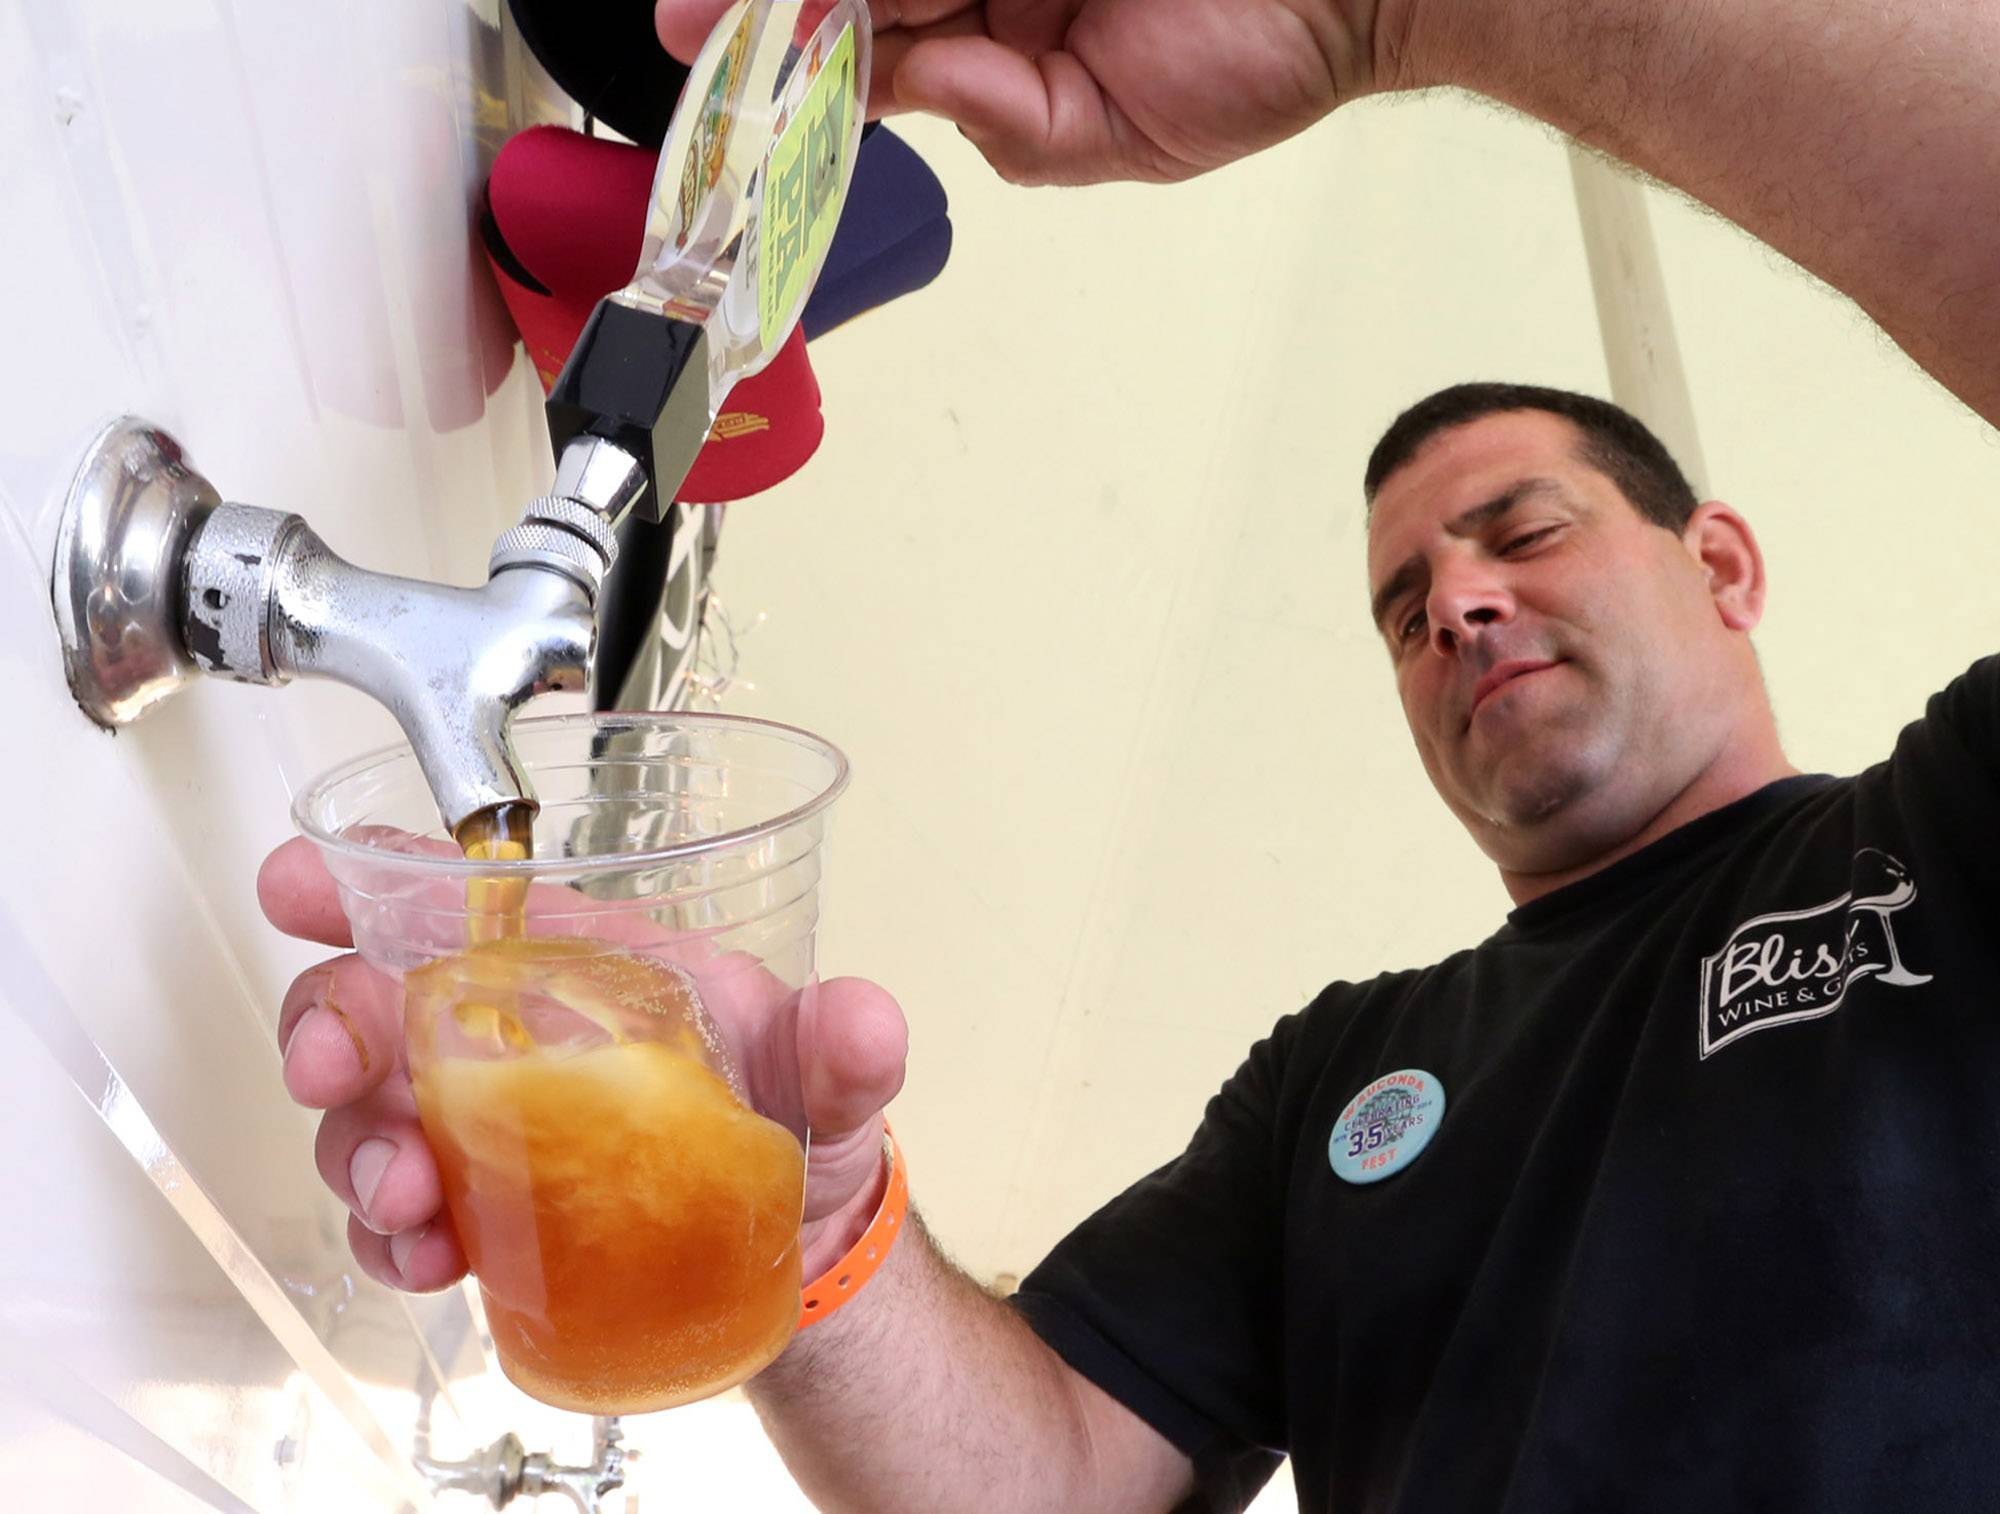 Scott Weisbruch taps an India pale ale in the Bliss Wine and Gifts of Wauconda wine tasting tent at the third day of Wauconda Fest on Saturday.